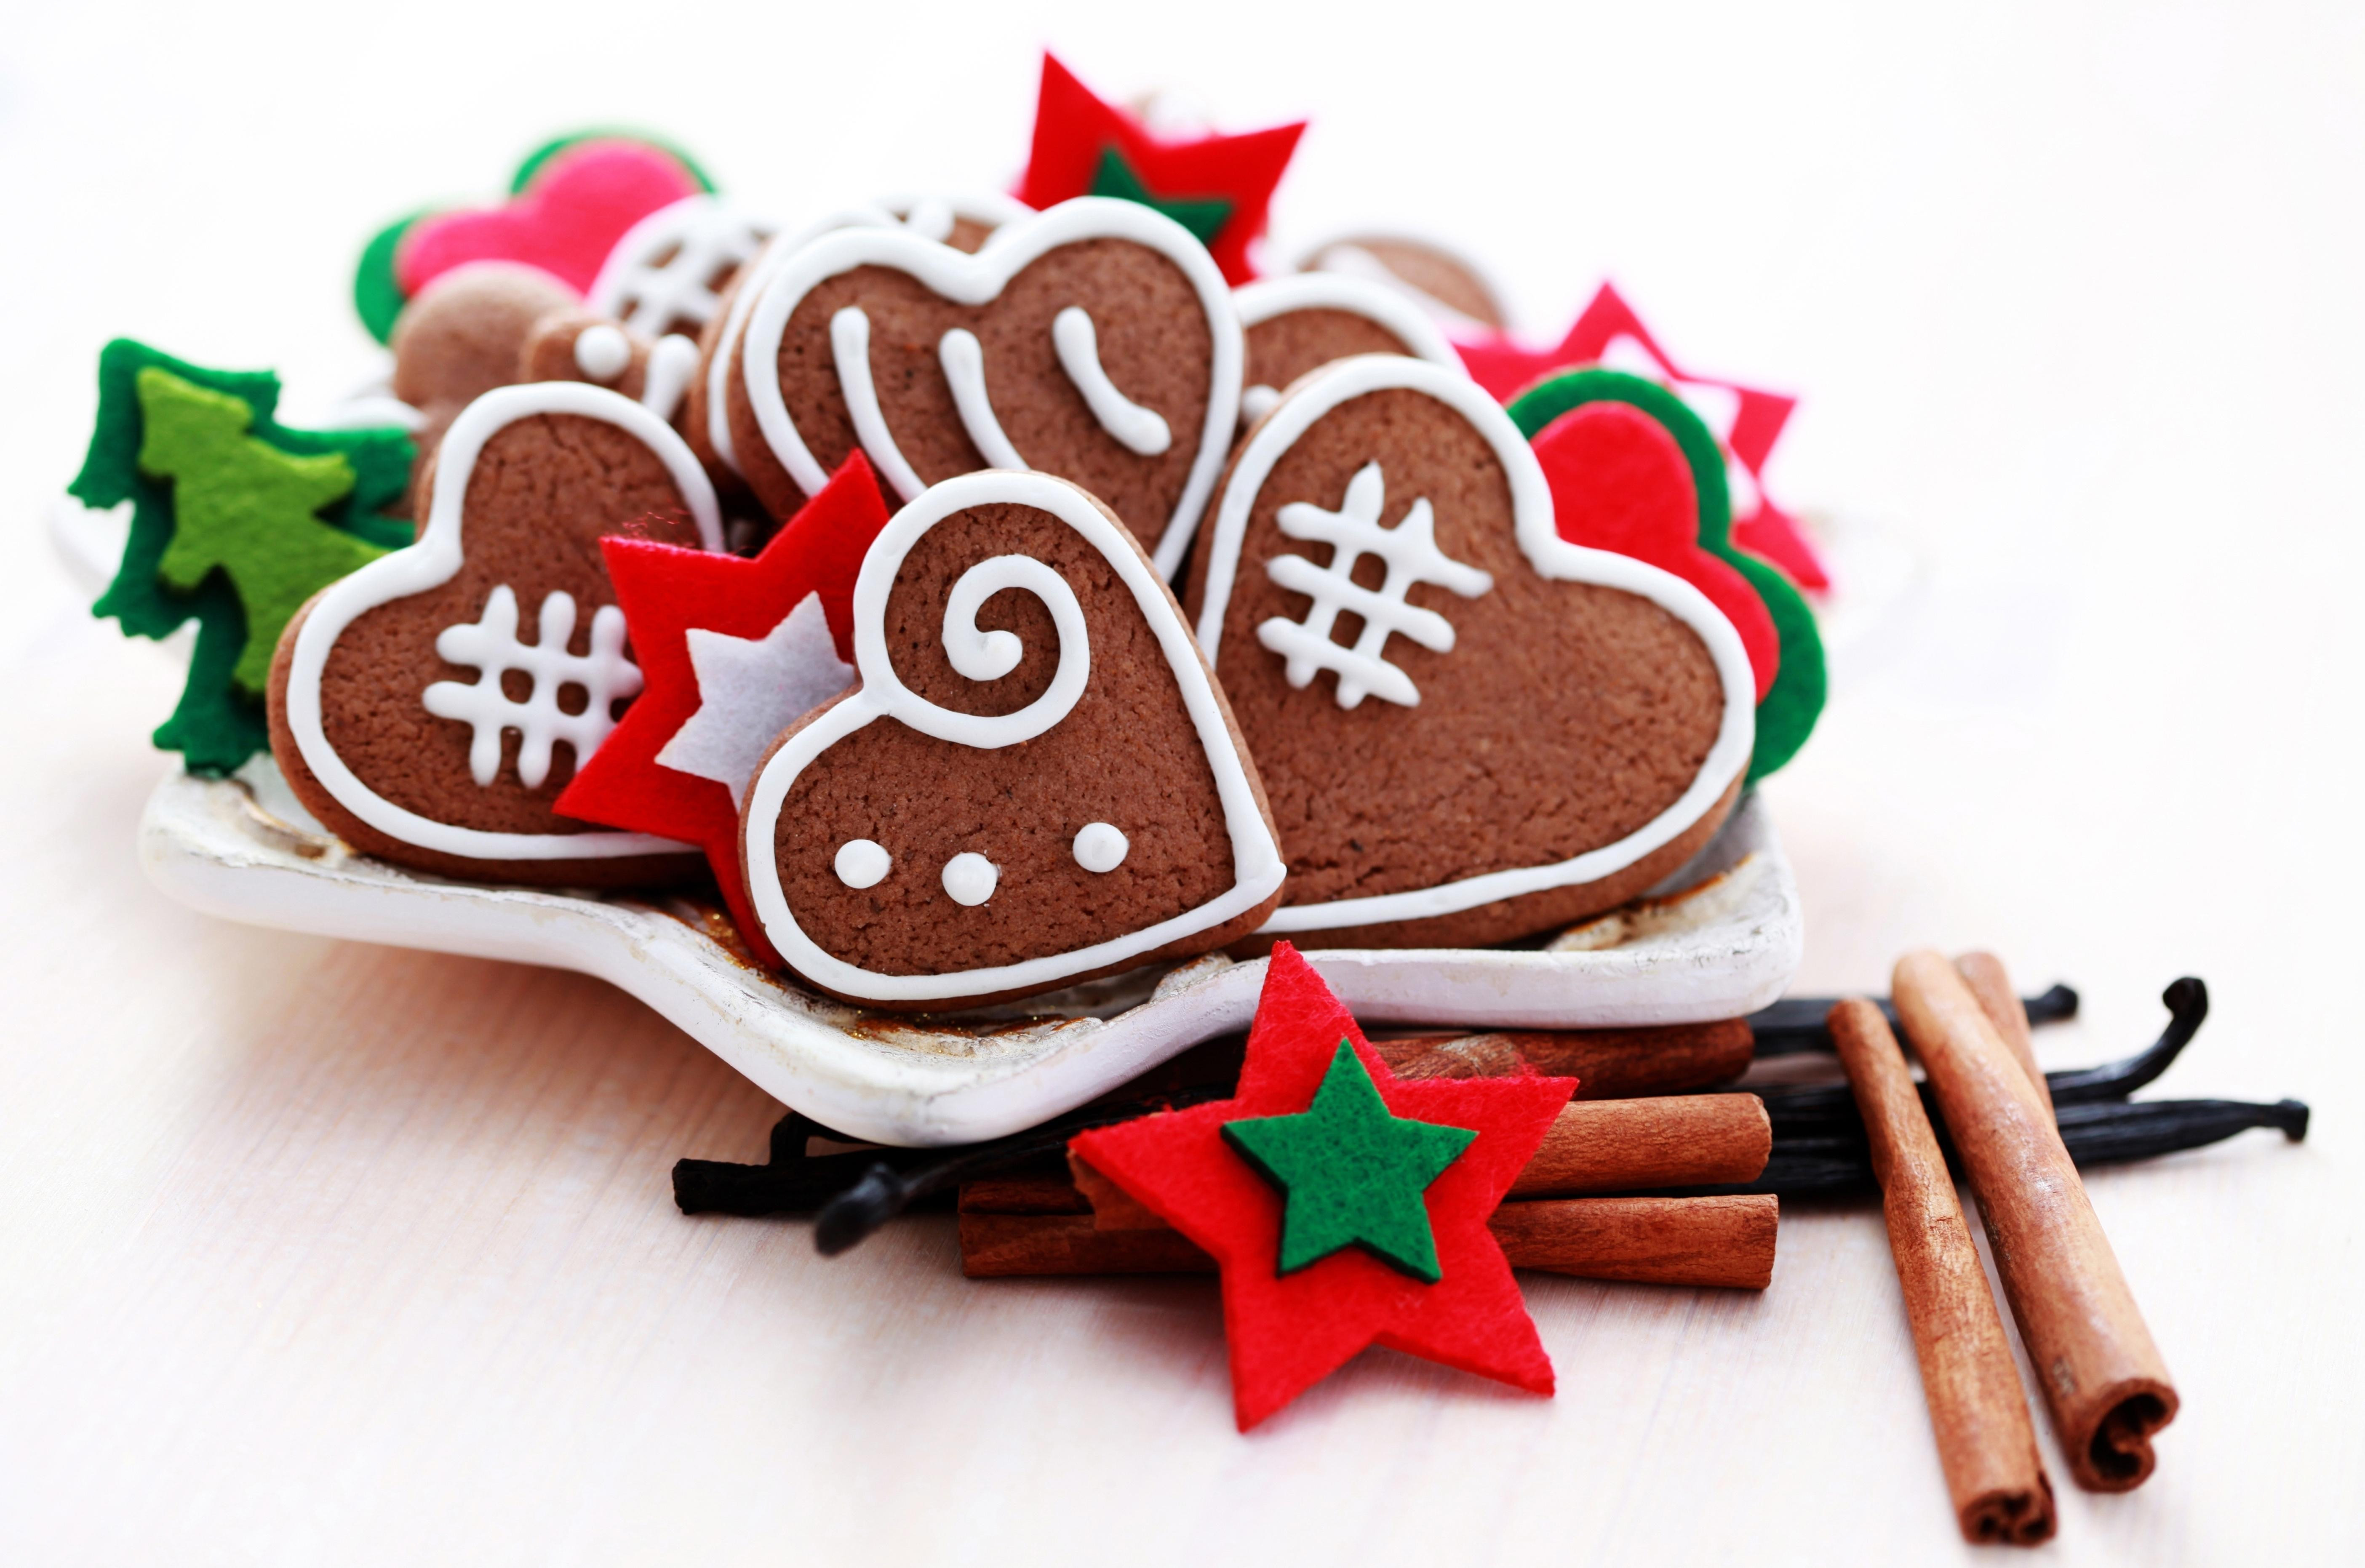 Christmas Cookies And Holiday Hearts  wallpaper cookies christmas hearts HD Widescreen